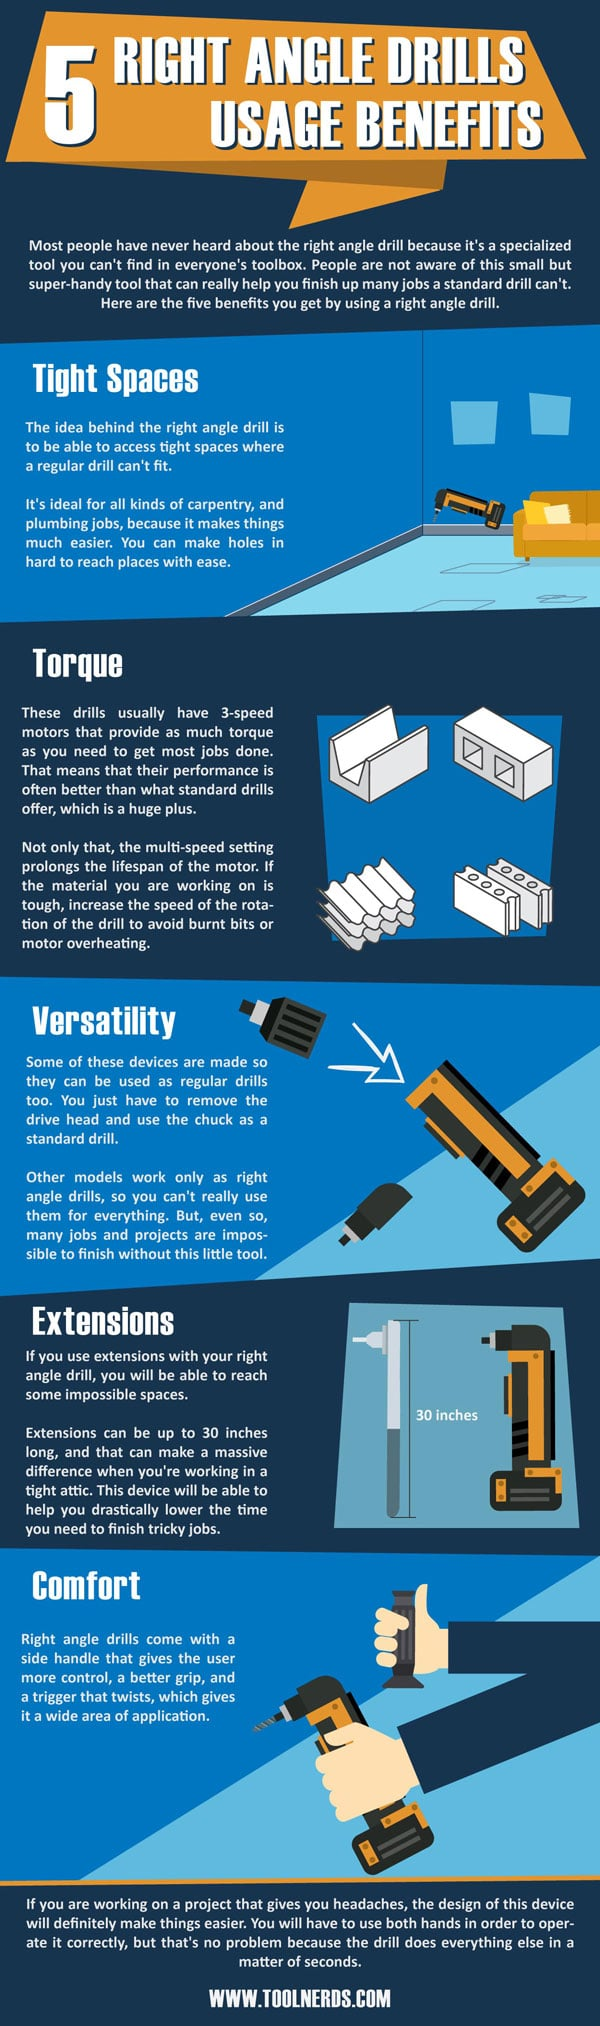 5 Right Angle Drills Usage Benefits Infographic